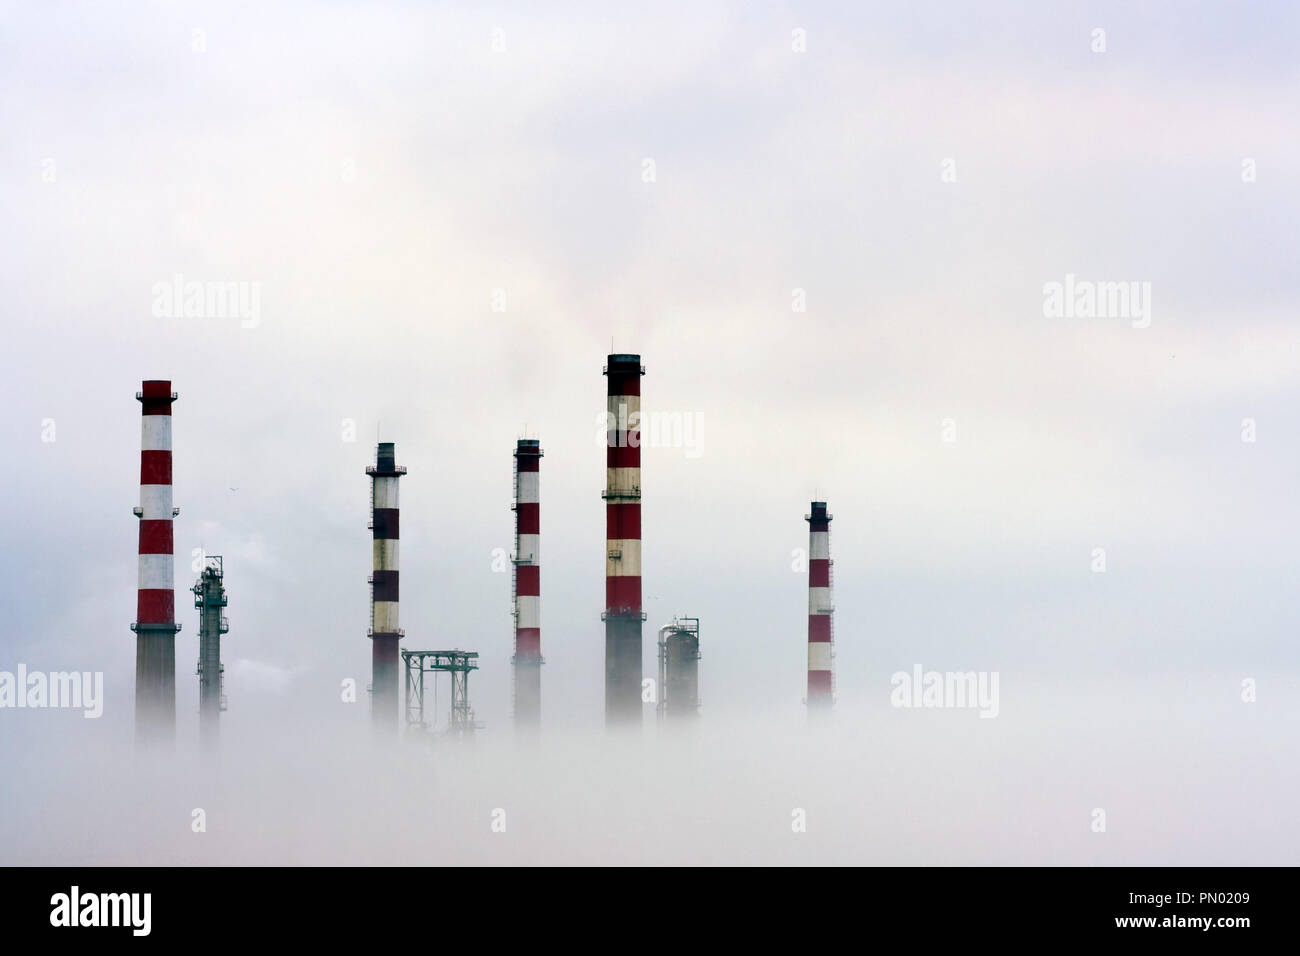 Chimneys of an oil refinery semi losted in the fog - Stock Image